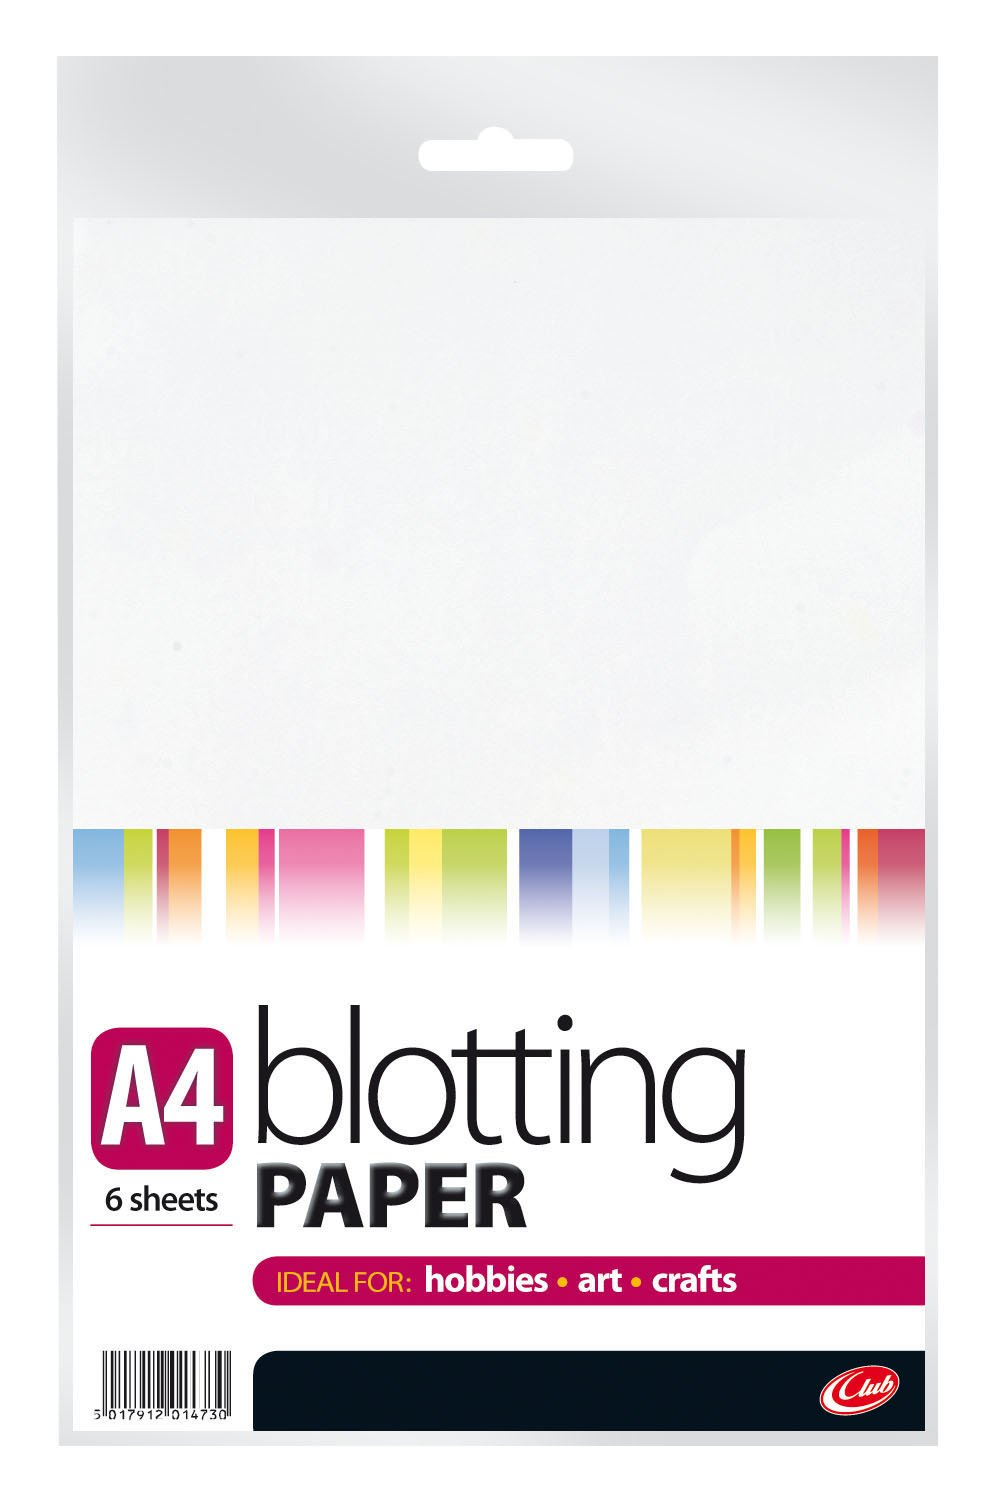 Flower press giant 372x287mm by pd amazon kitchen home a4 blotting paper mightylinksfo